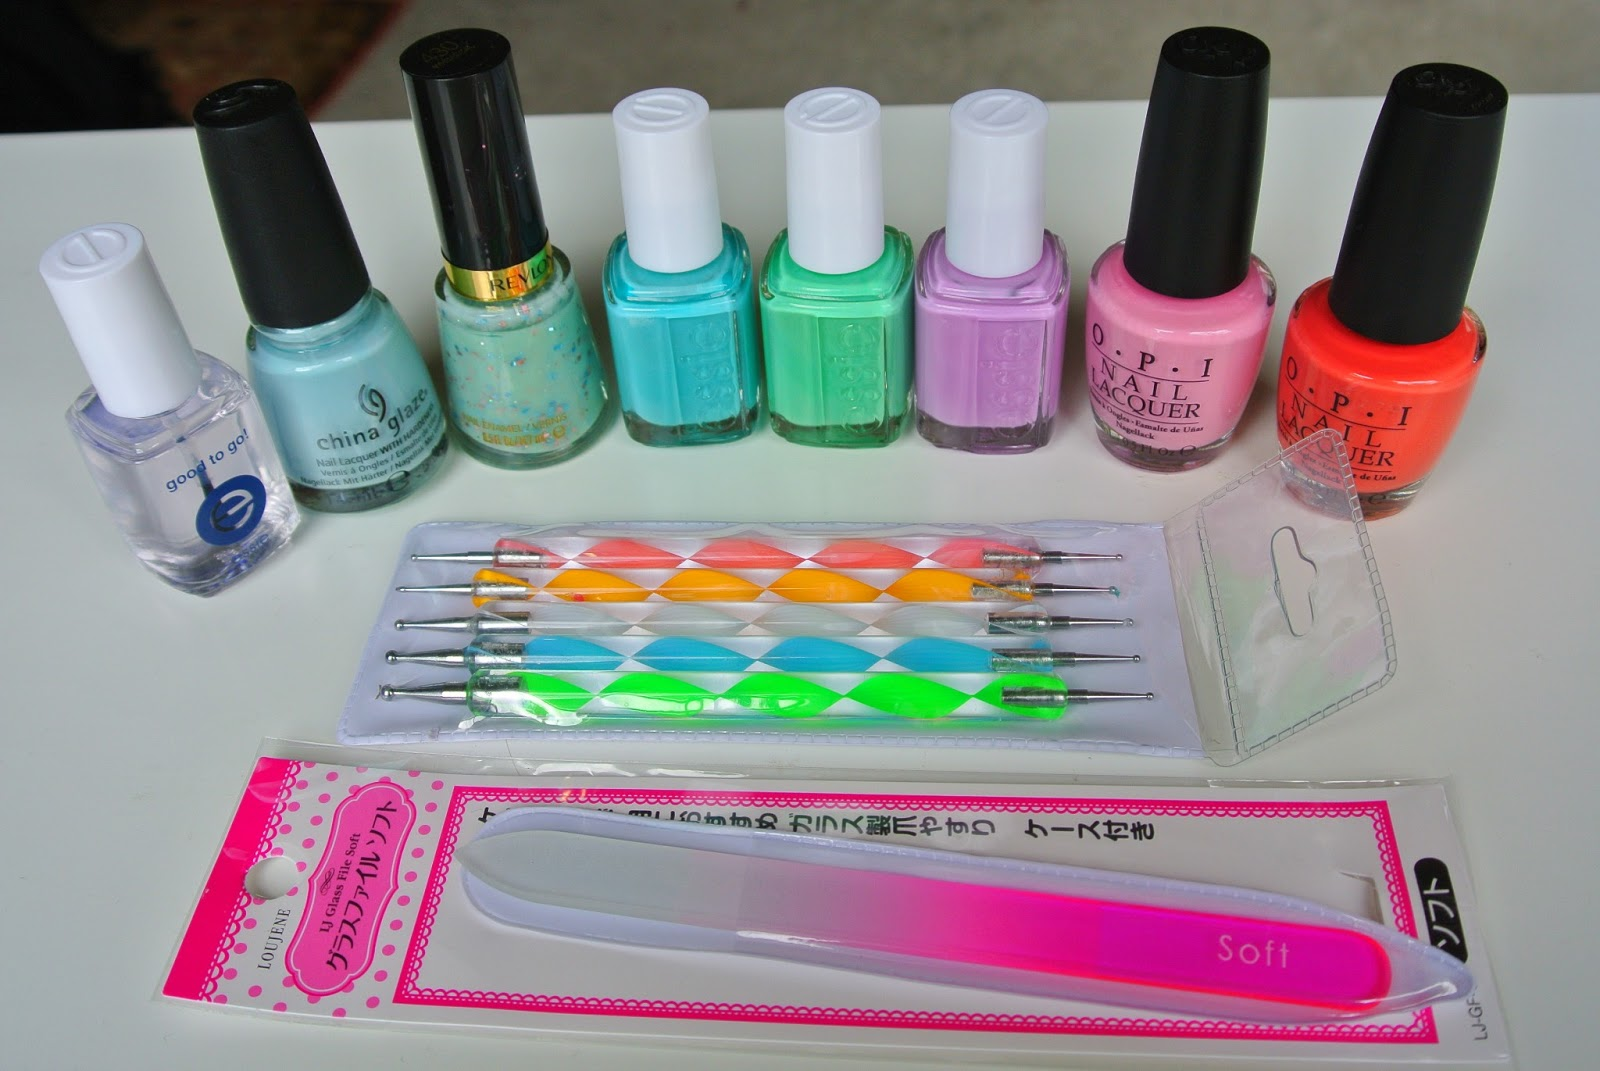 With Love, Tiffany ❤: Nail Polish Haul: Essie, OPI, China Glaze